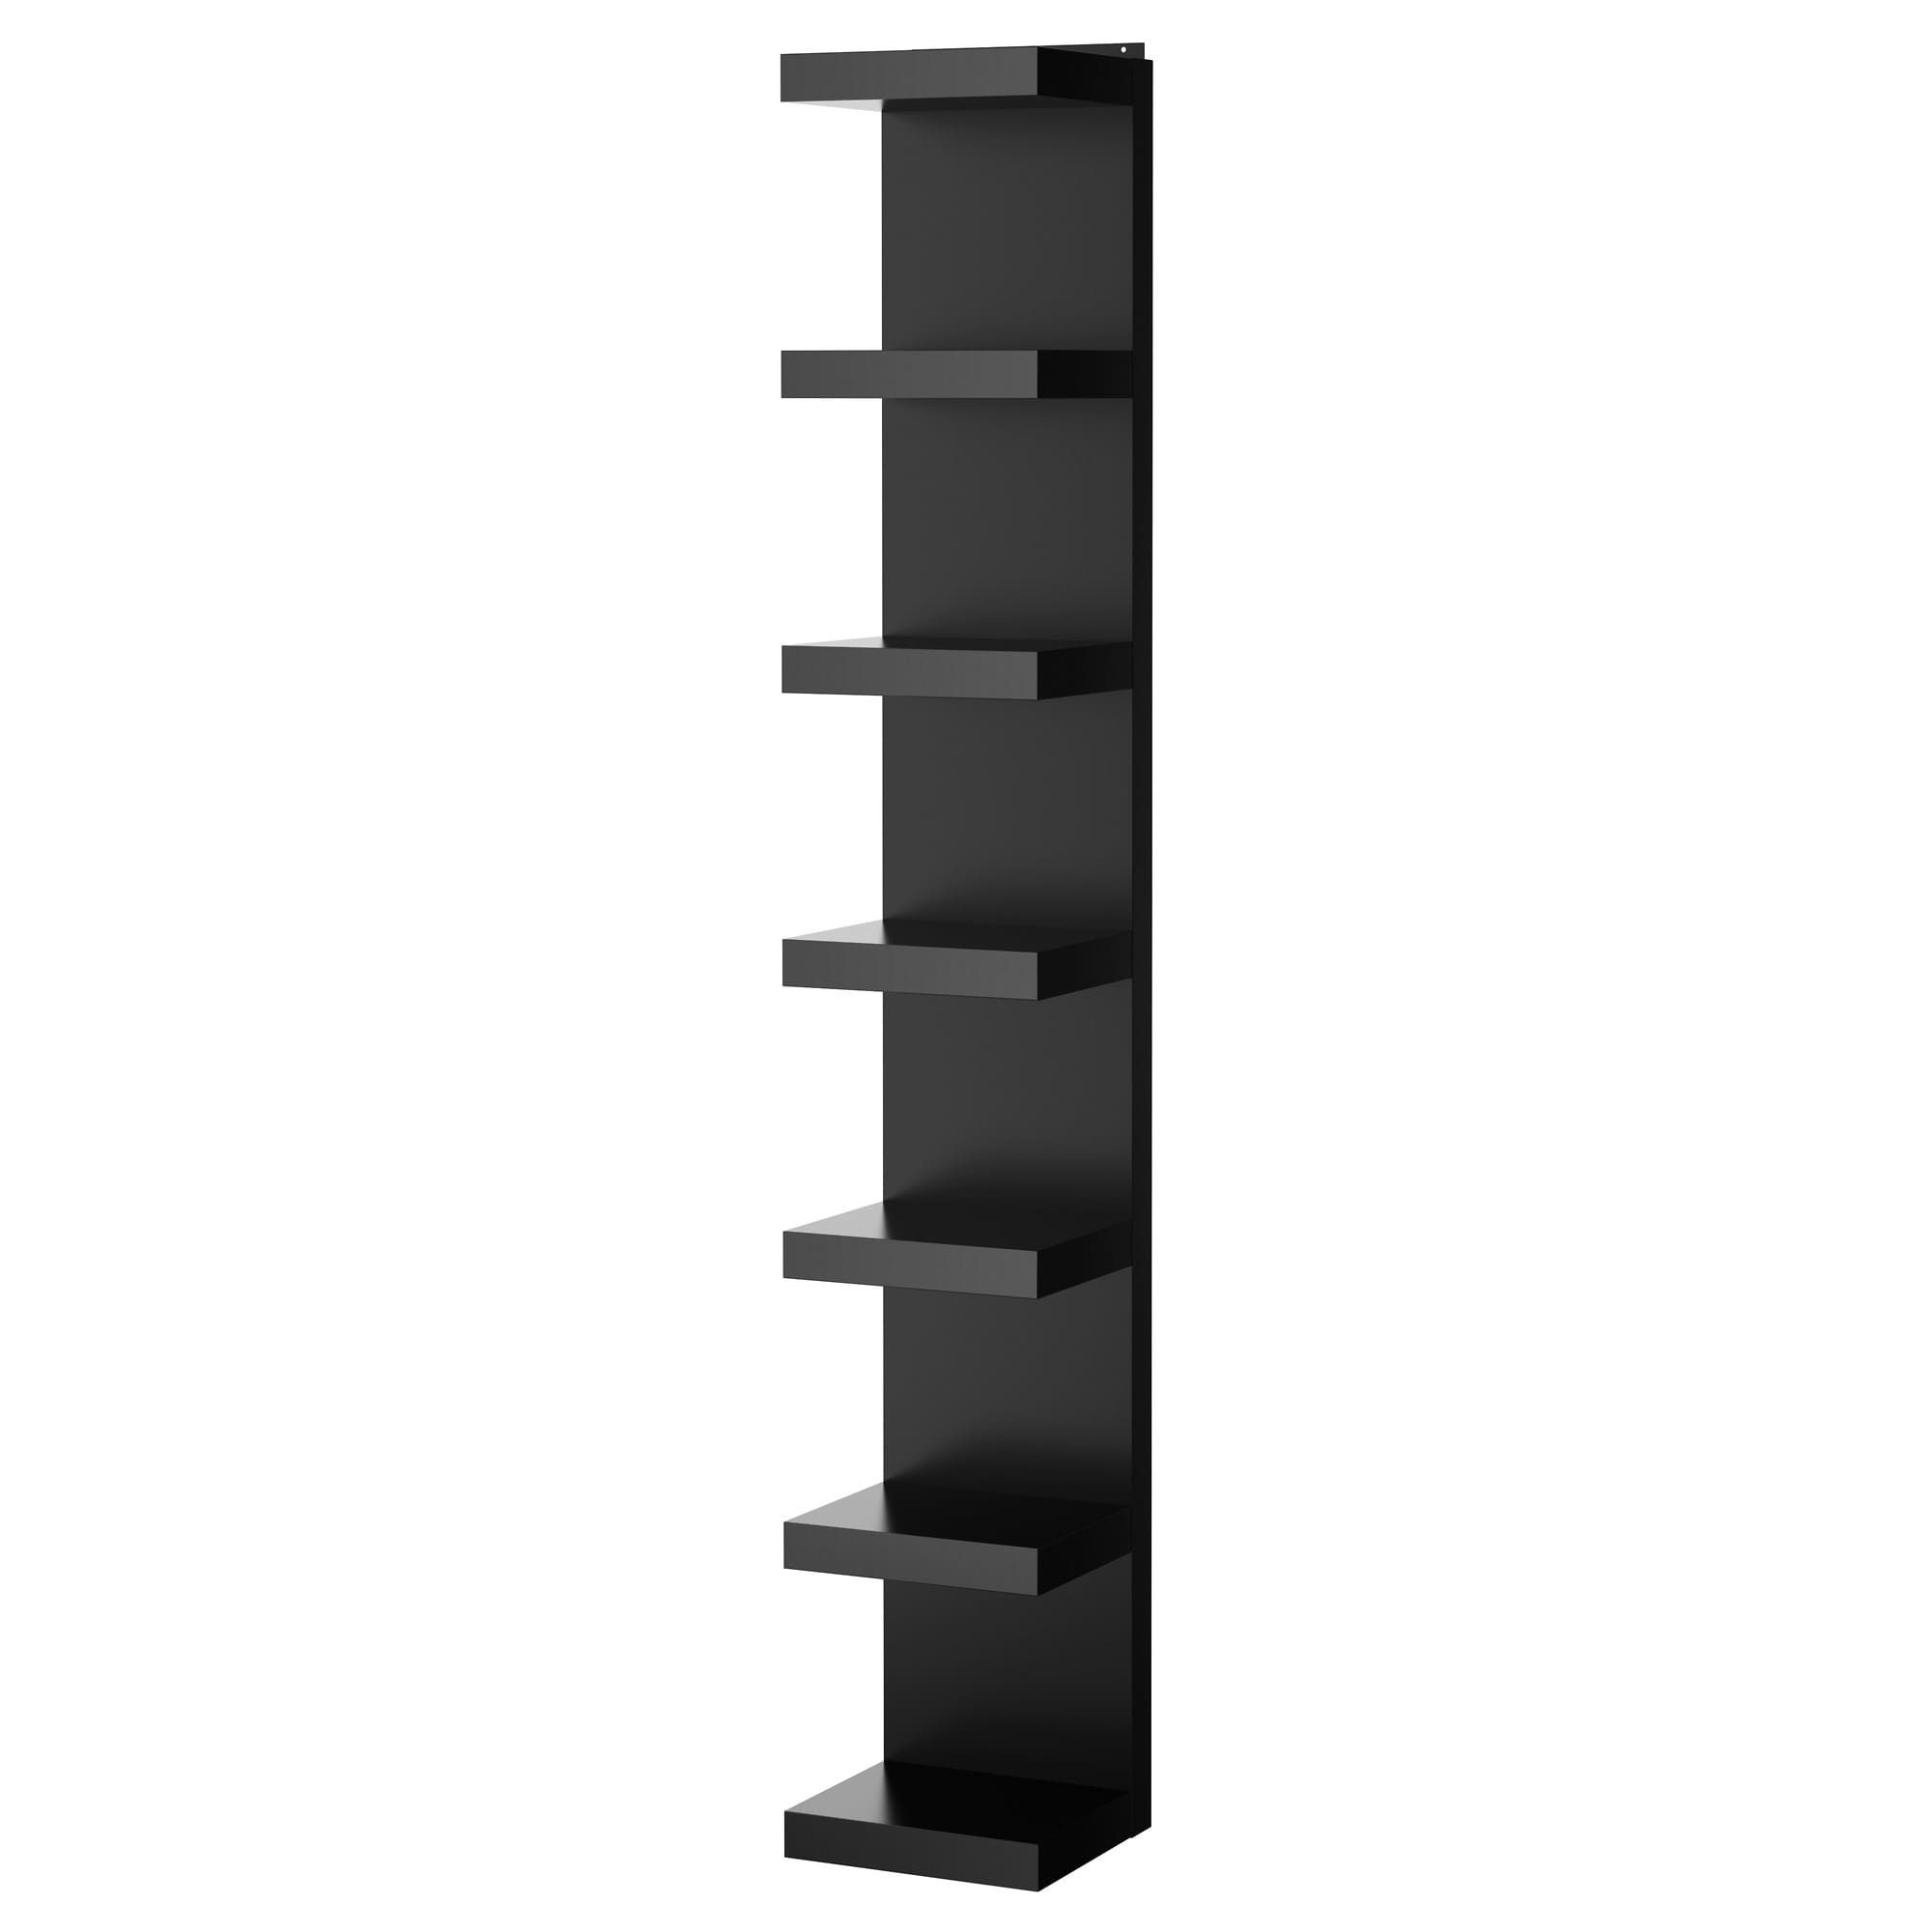 Etagere Ikea Schwarz Lack Wall Shelf Unit Black Ikea Trip Ikea Lack Wall Shelf